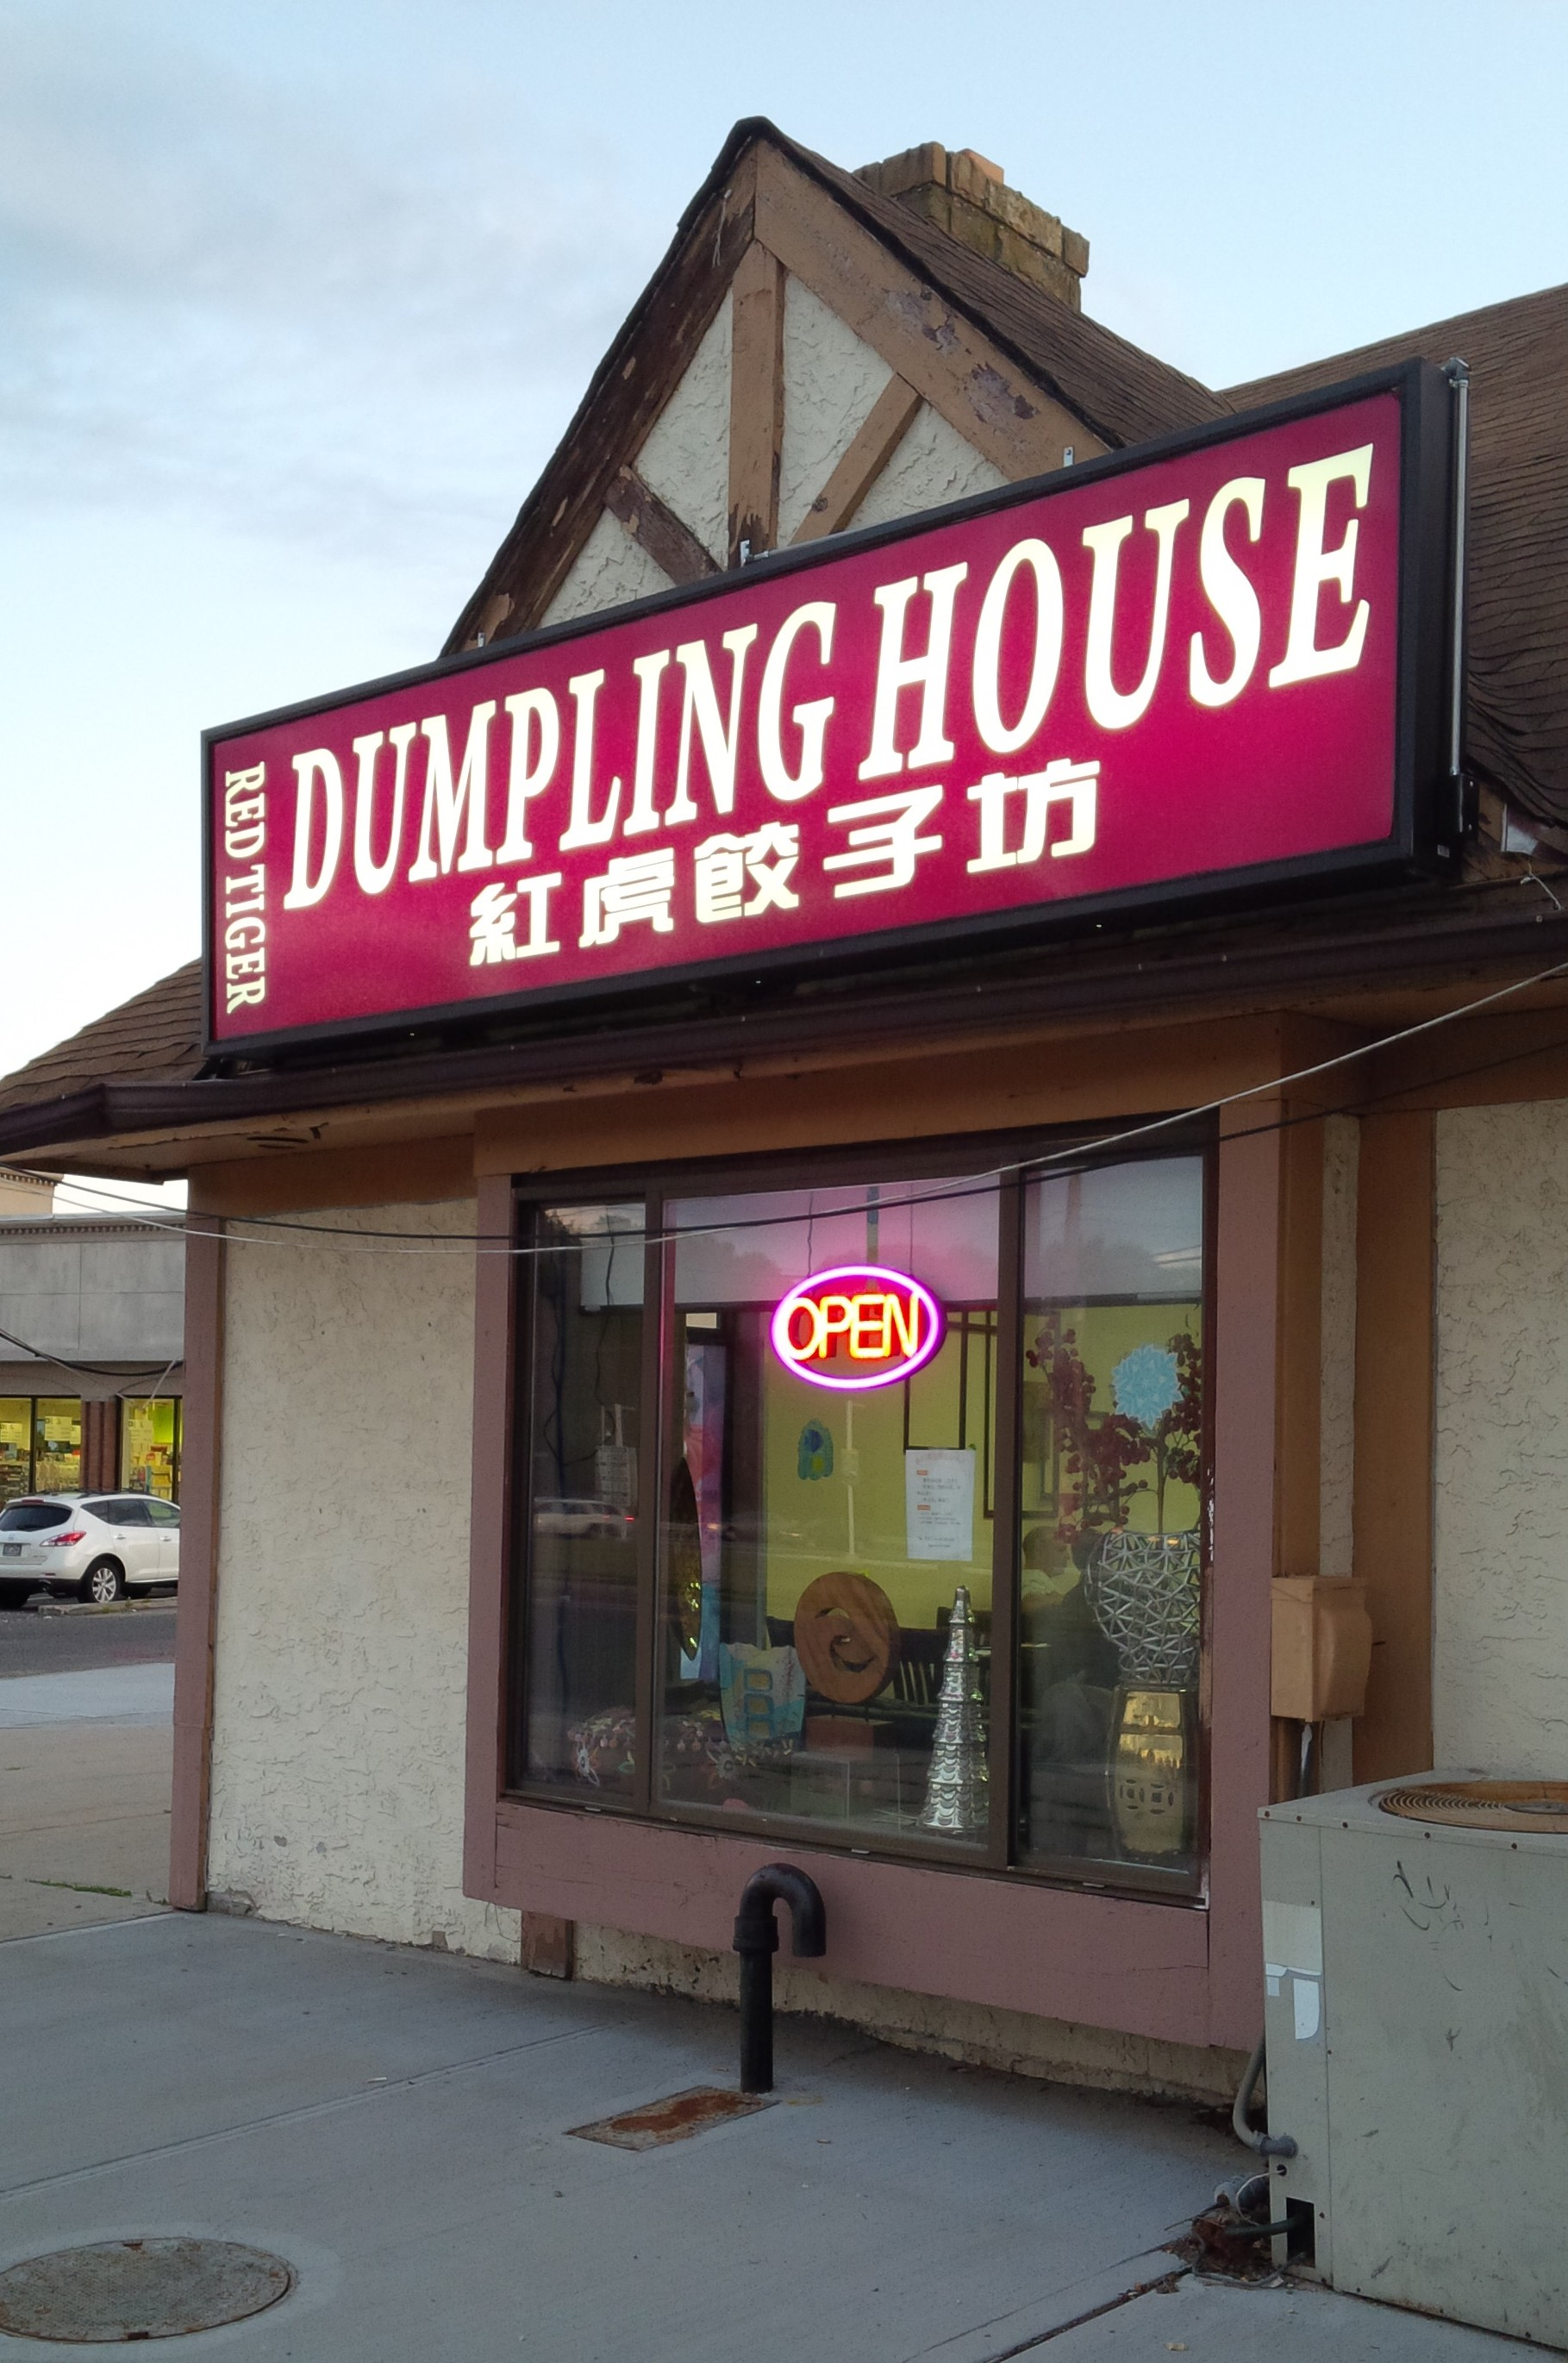 [REVIEW] Red Tiger Dumpling House, Stony Brook